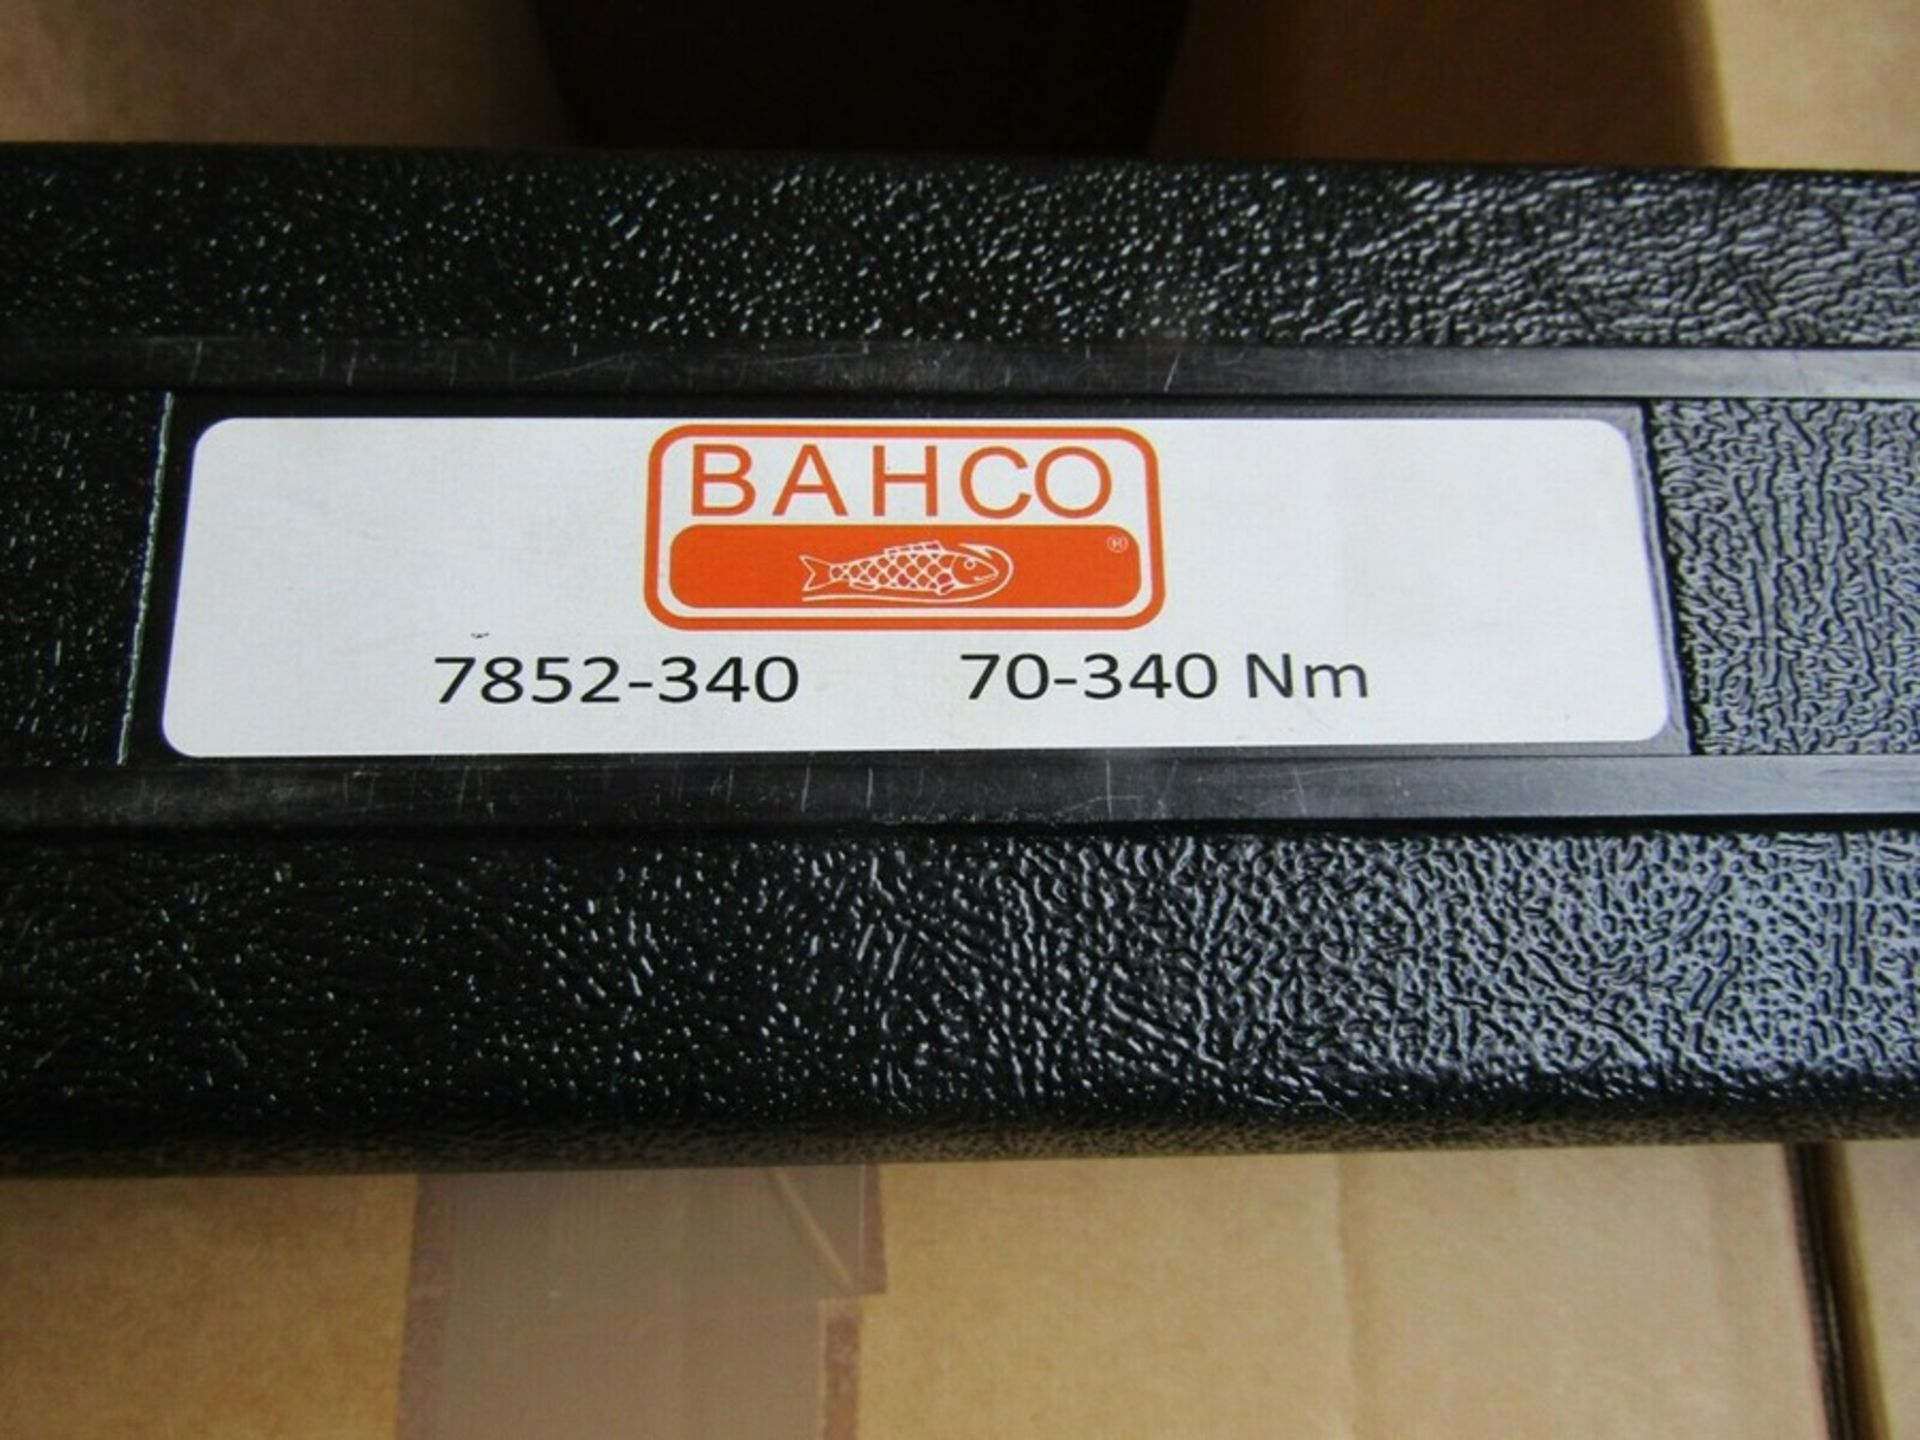 Bahco Square Drive Mechanical Torque Wrench, 70 - 340Nm 14 x 18mm Table 6672421 - Image 4 of 4